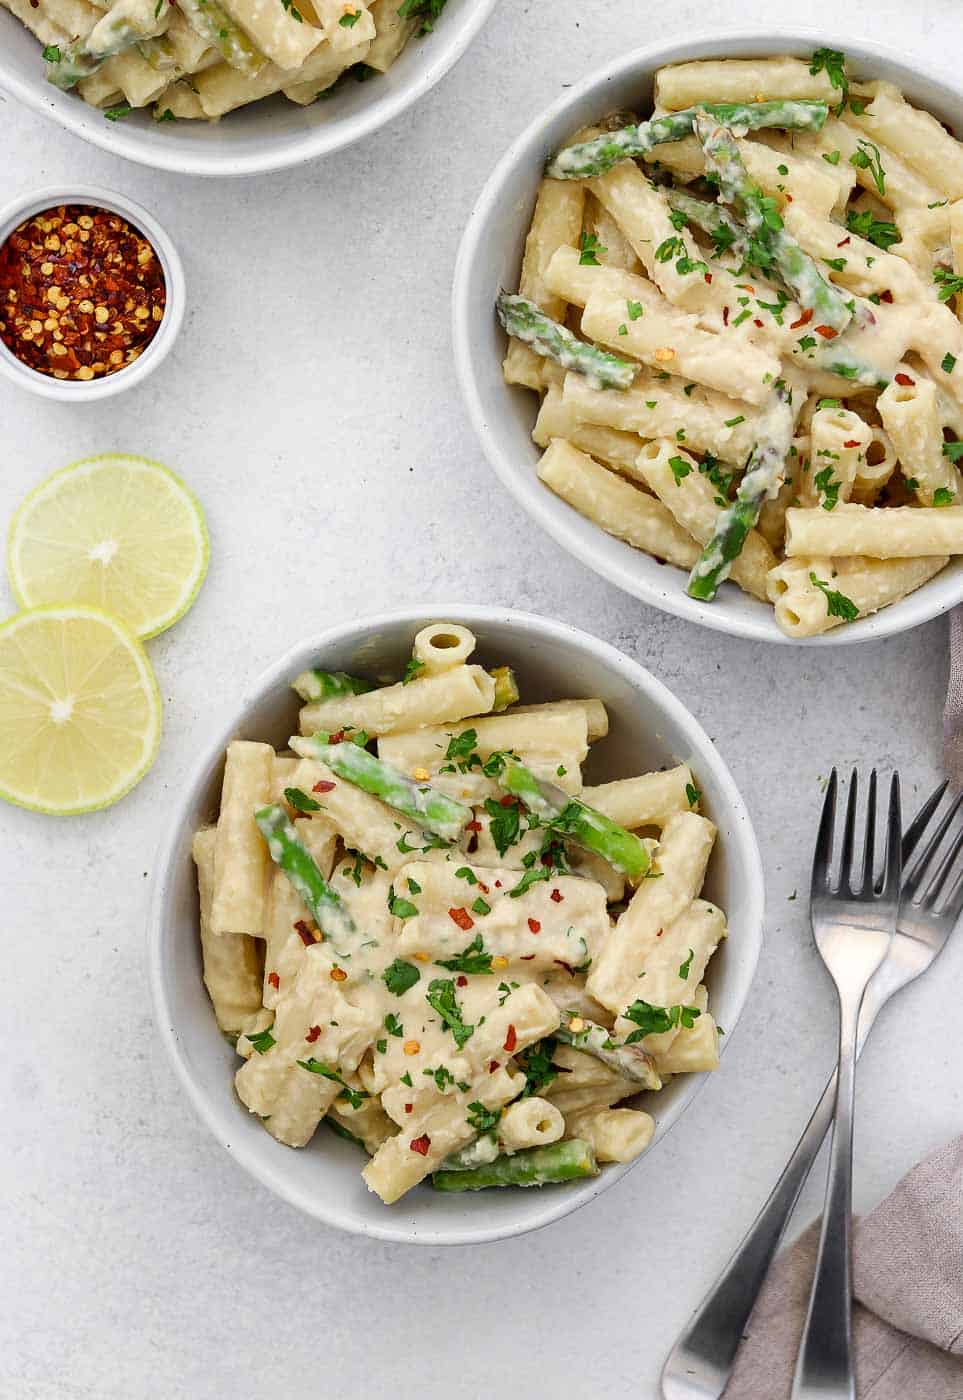 Three bowls of pasta with lemon and red pepper flakes.